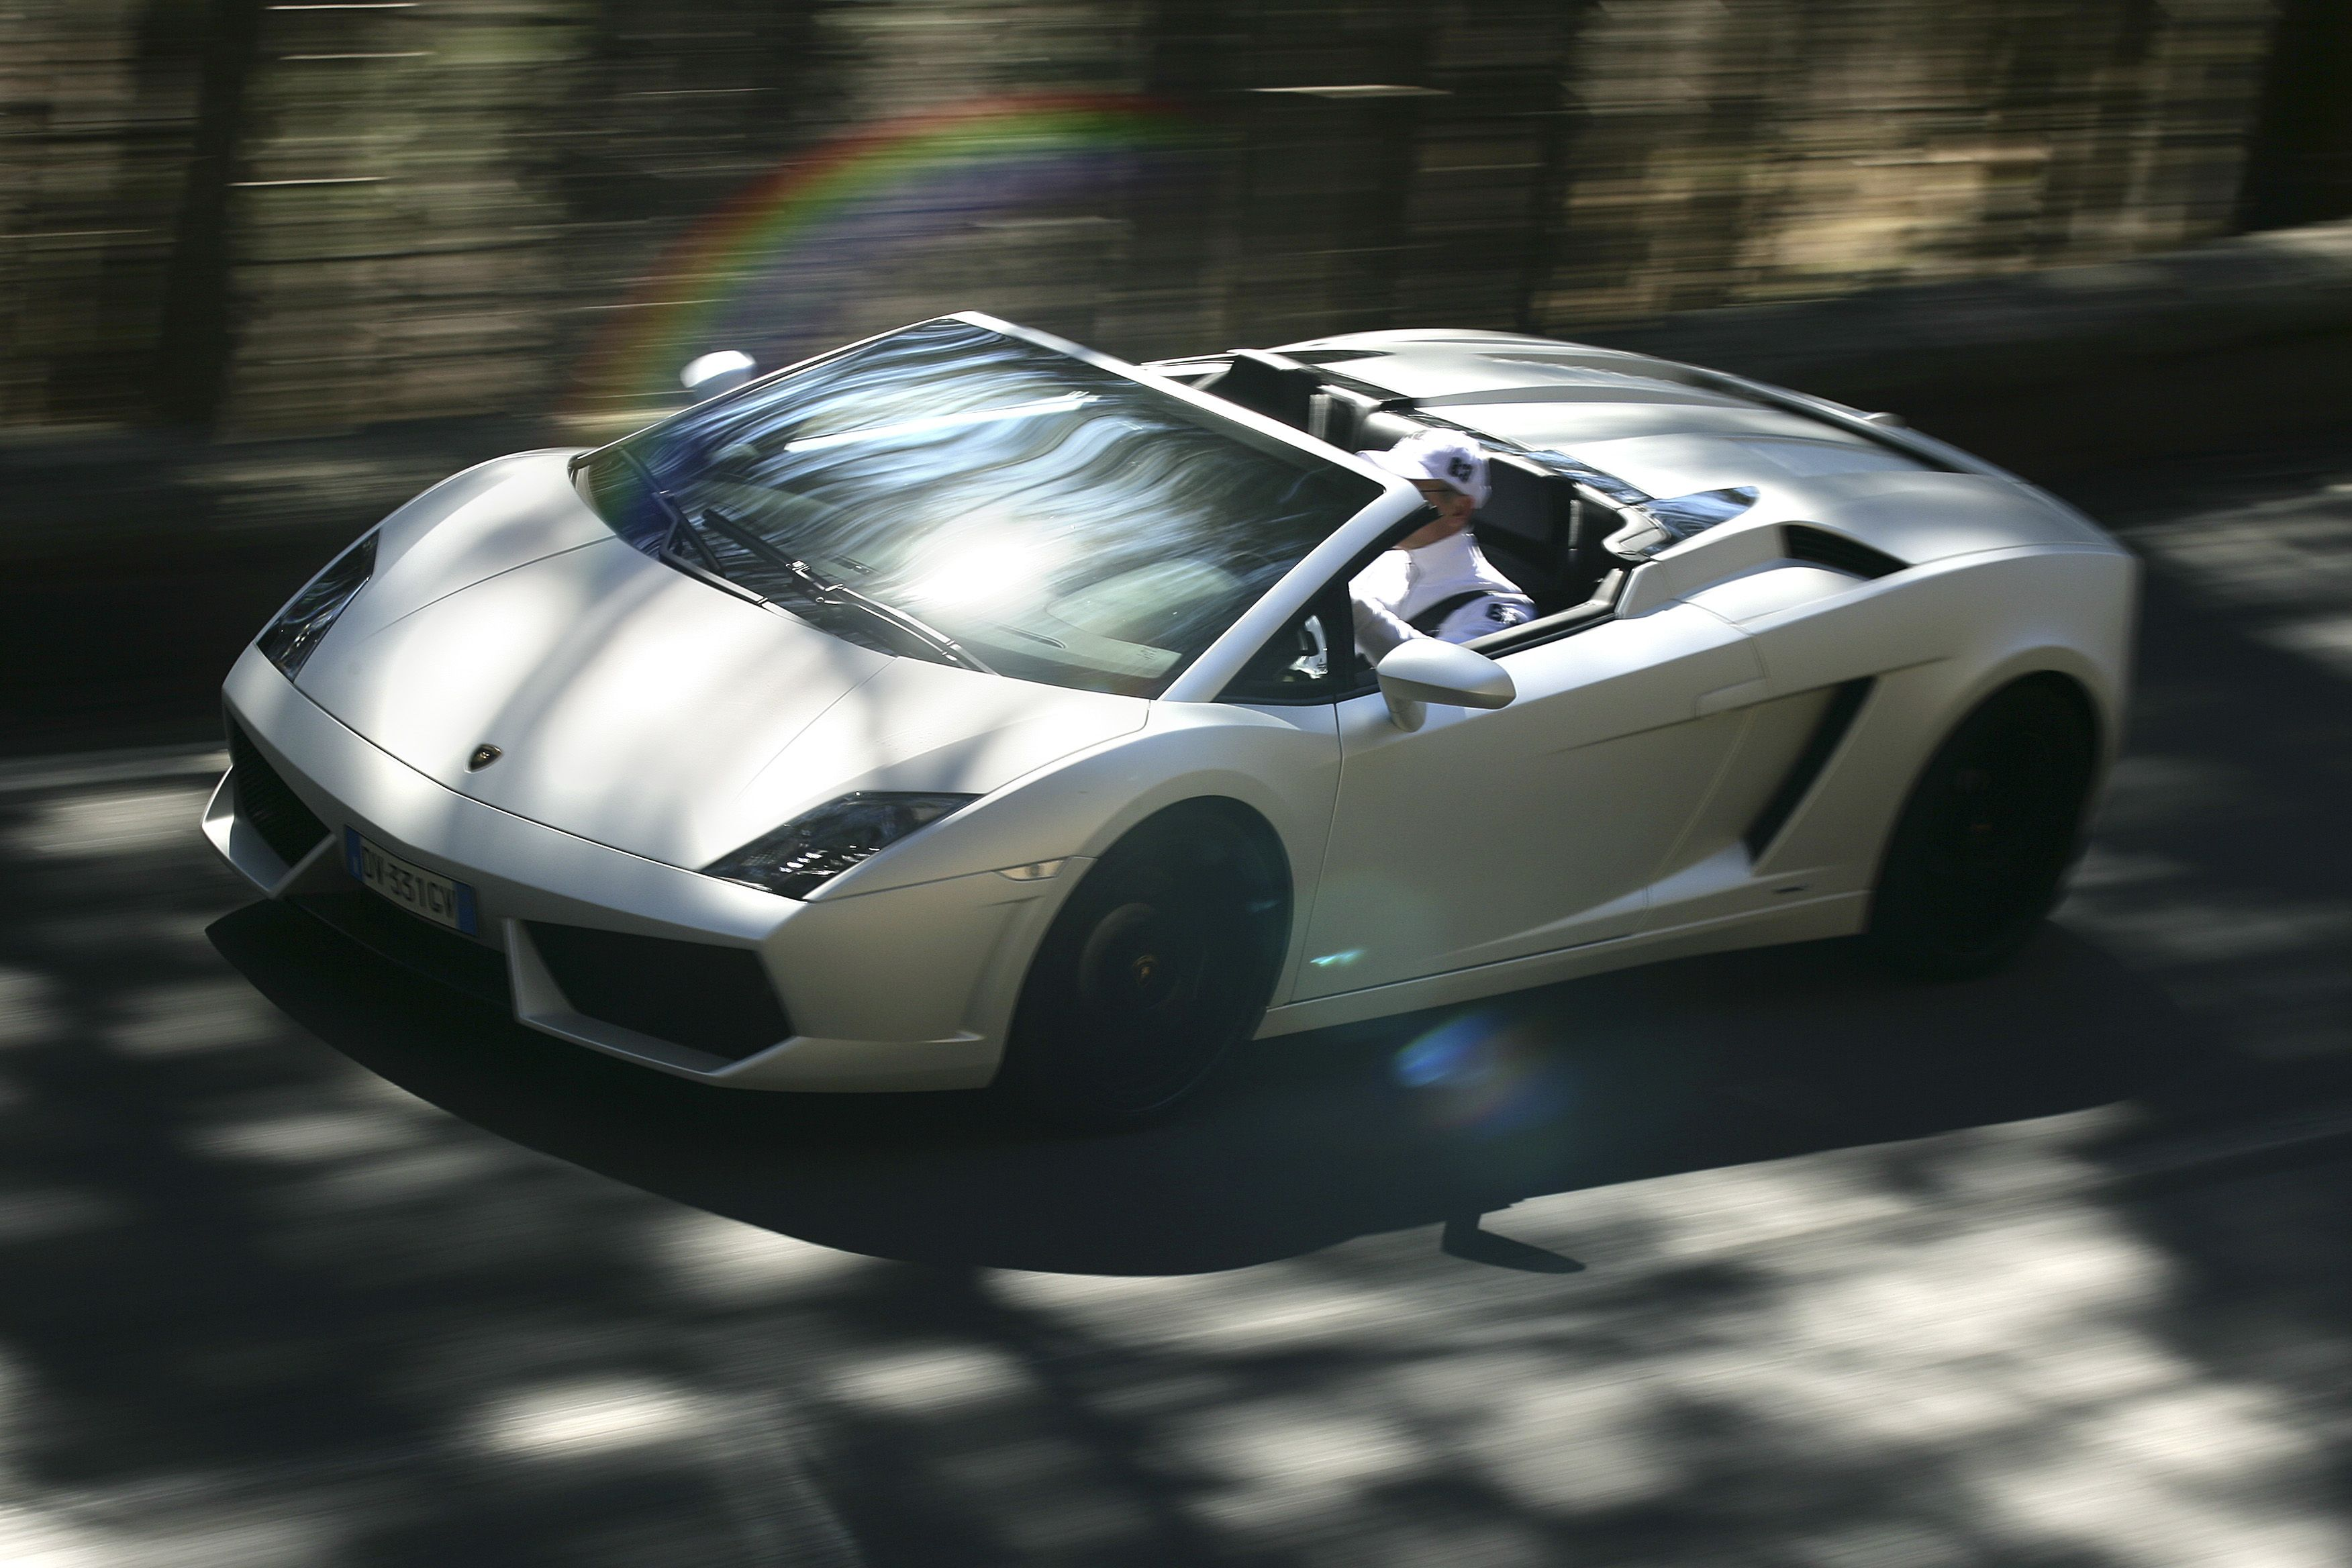 rental available spyder french lp gallardo d lamborghini wallpapers alps cote in pin hd pictures azur and images cars paris